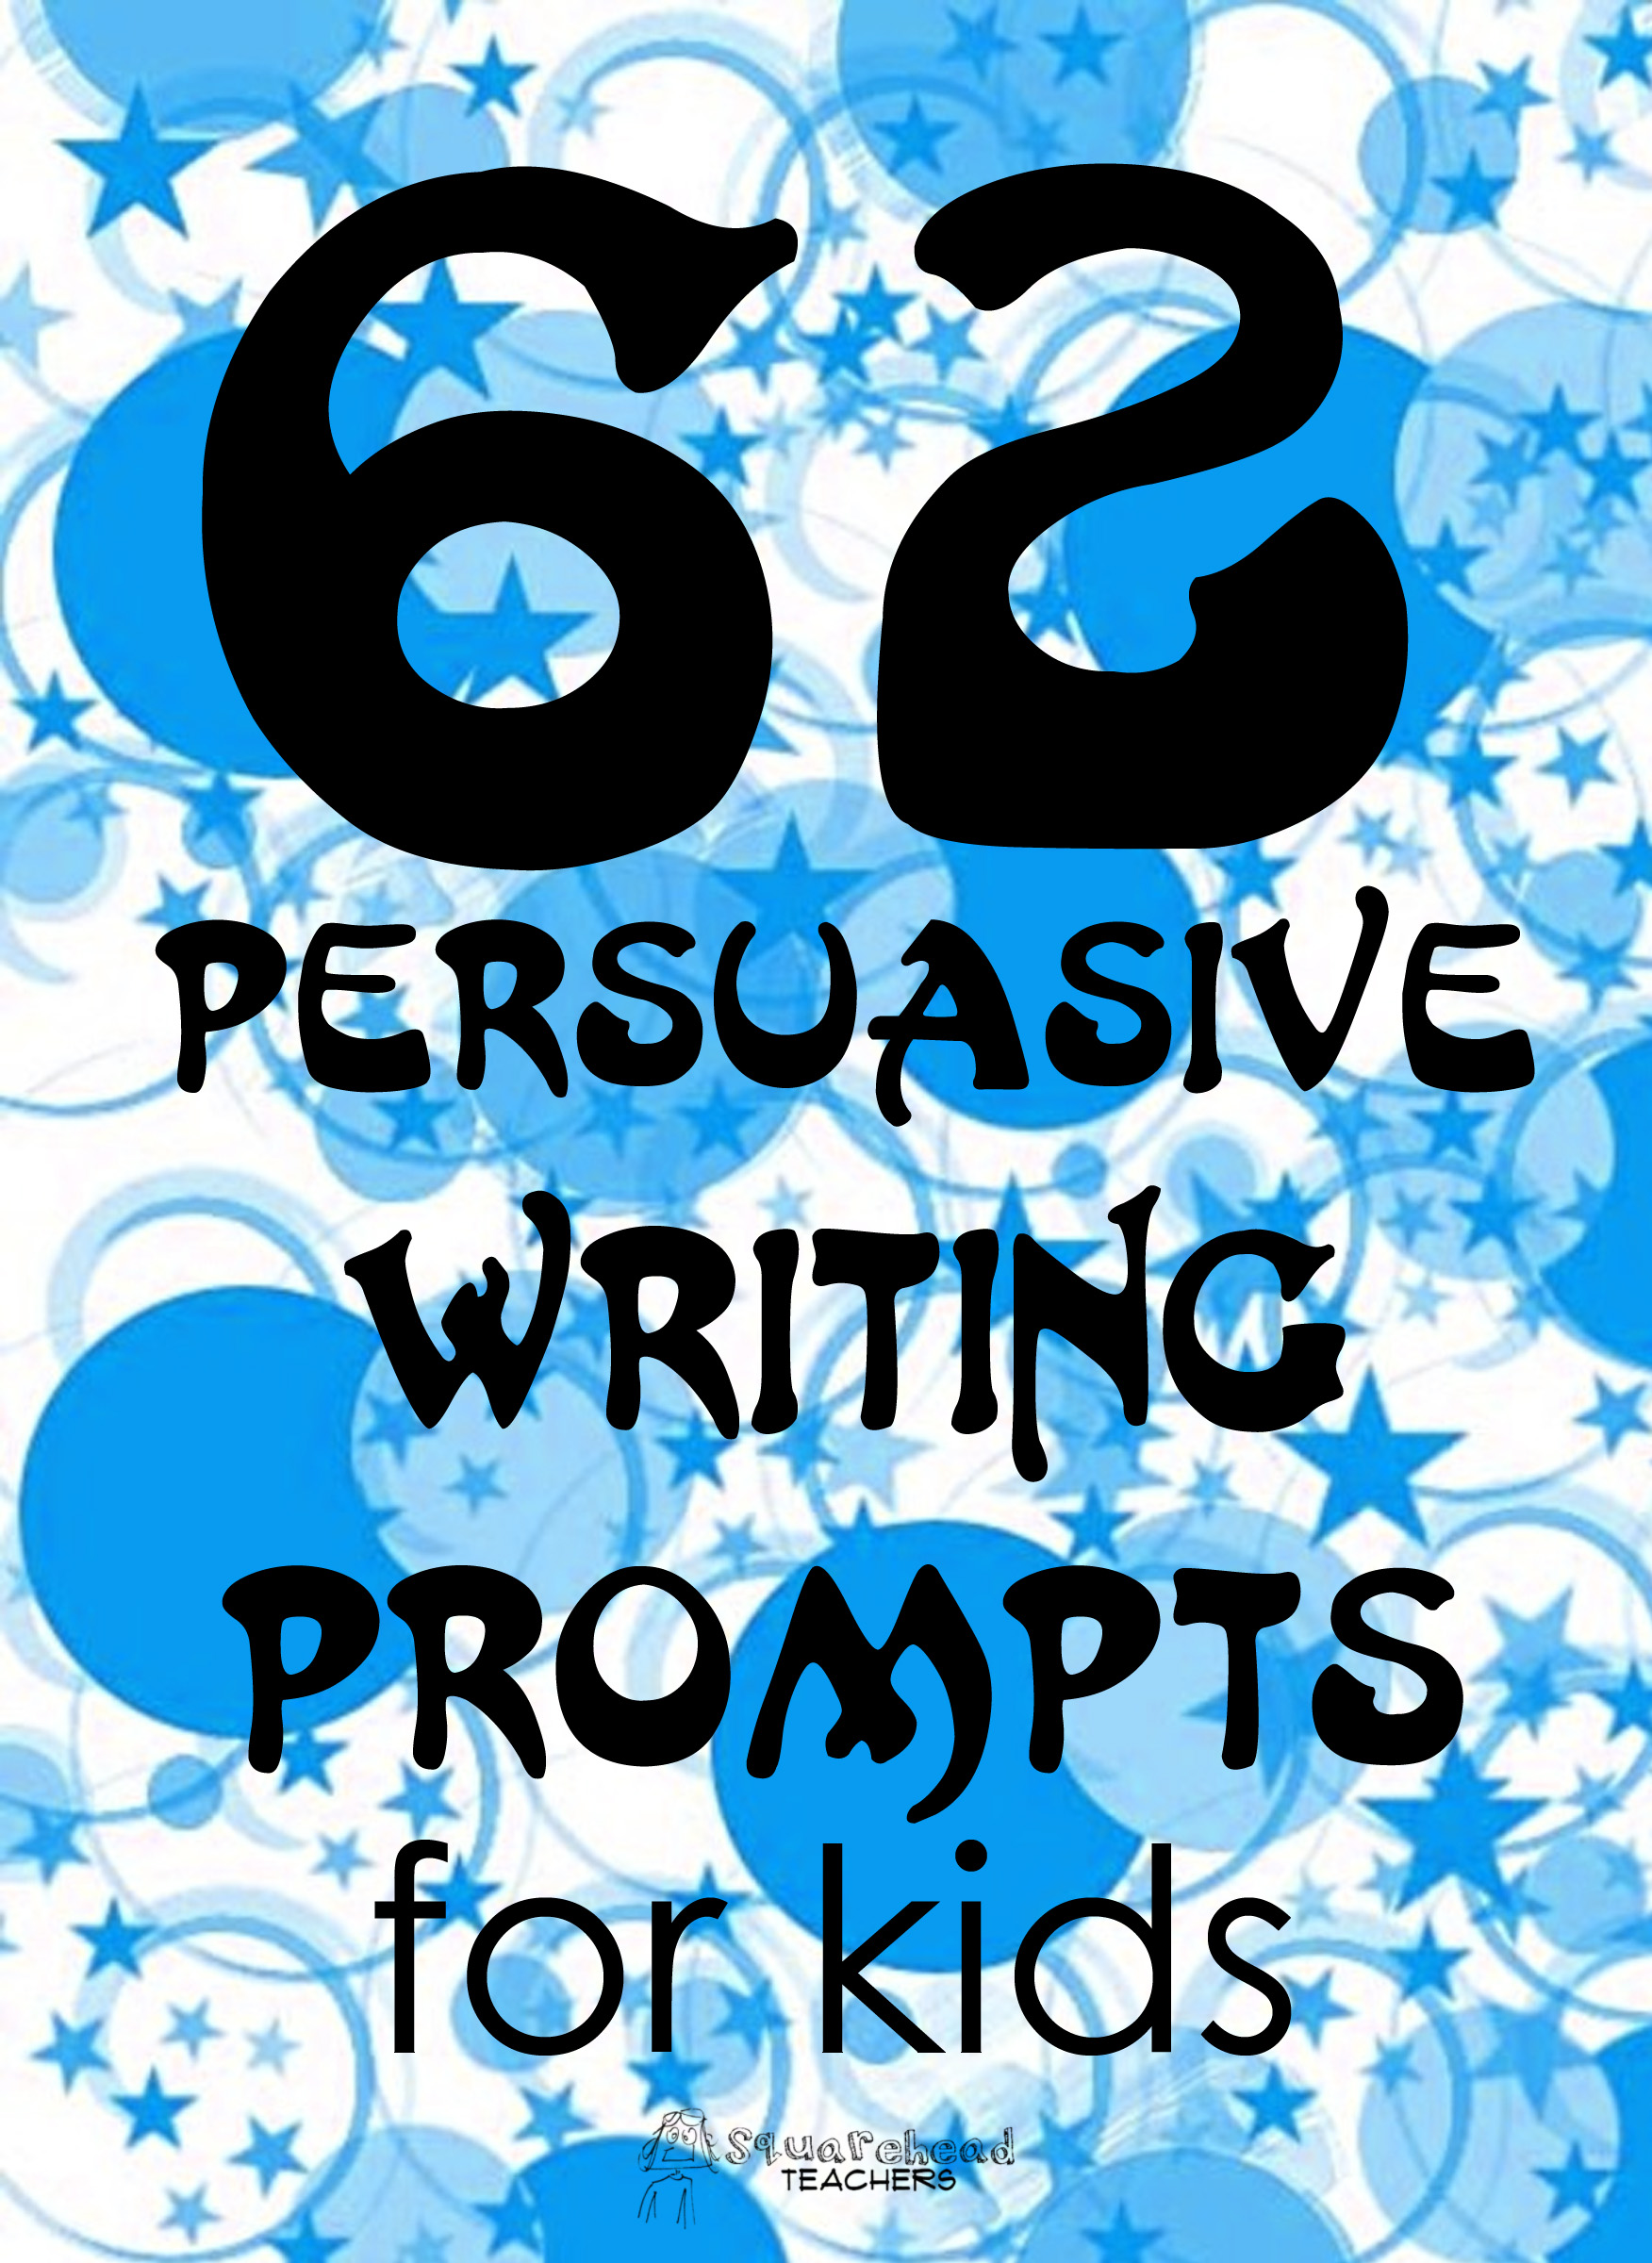 custom writing prompts narrative essay prompts for elementary school the scarlet letter lbartman com narrative writing prompts for kids